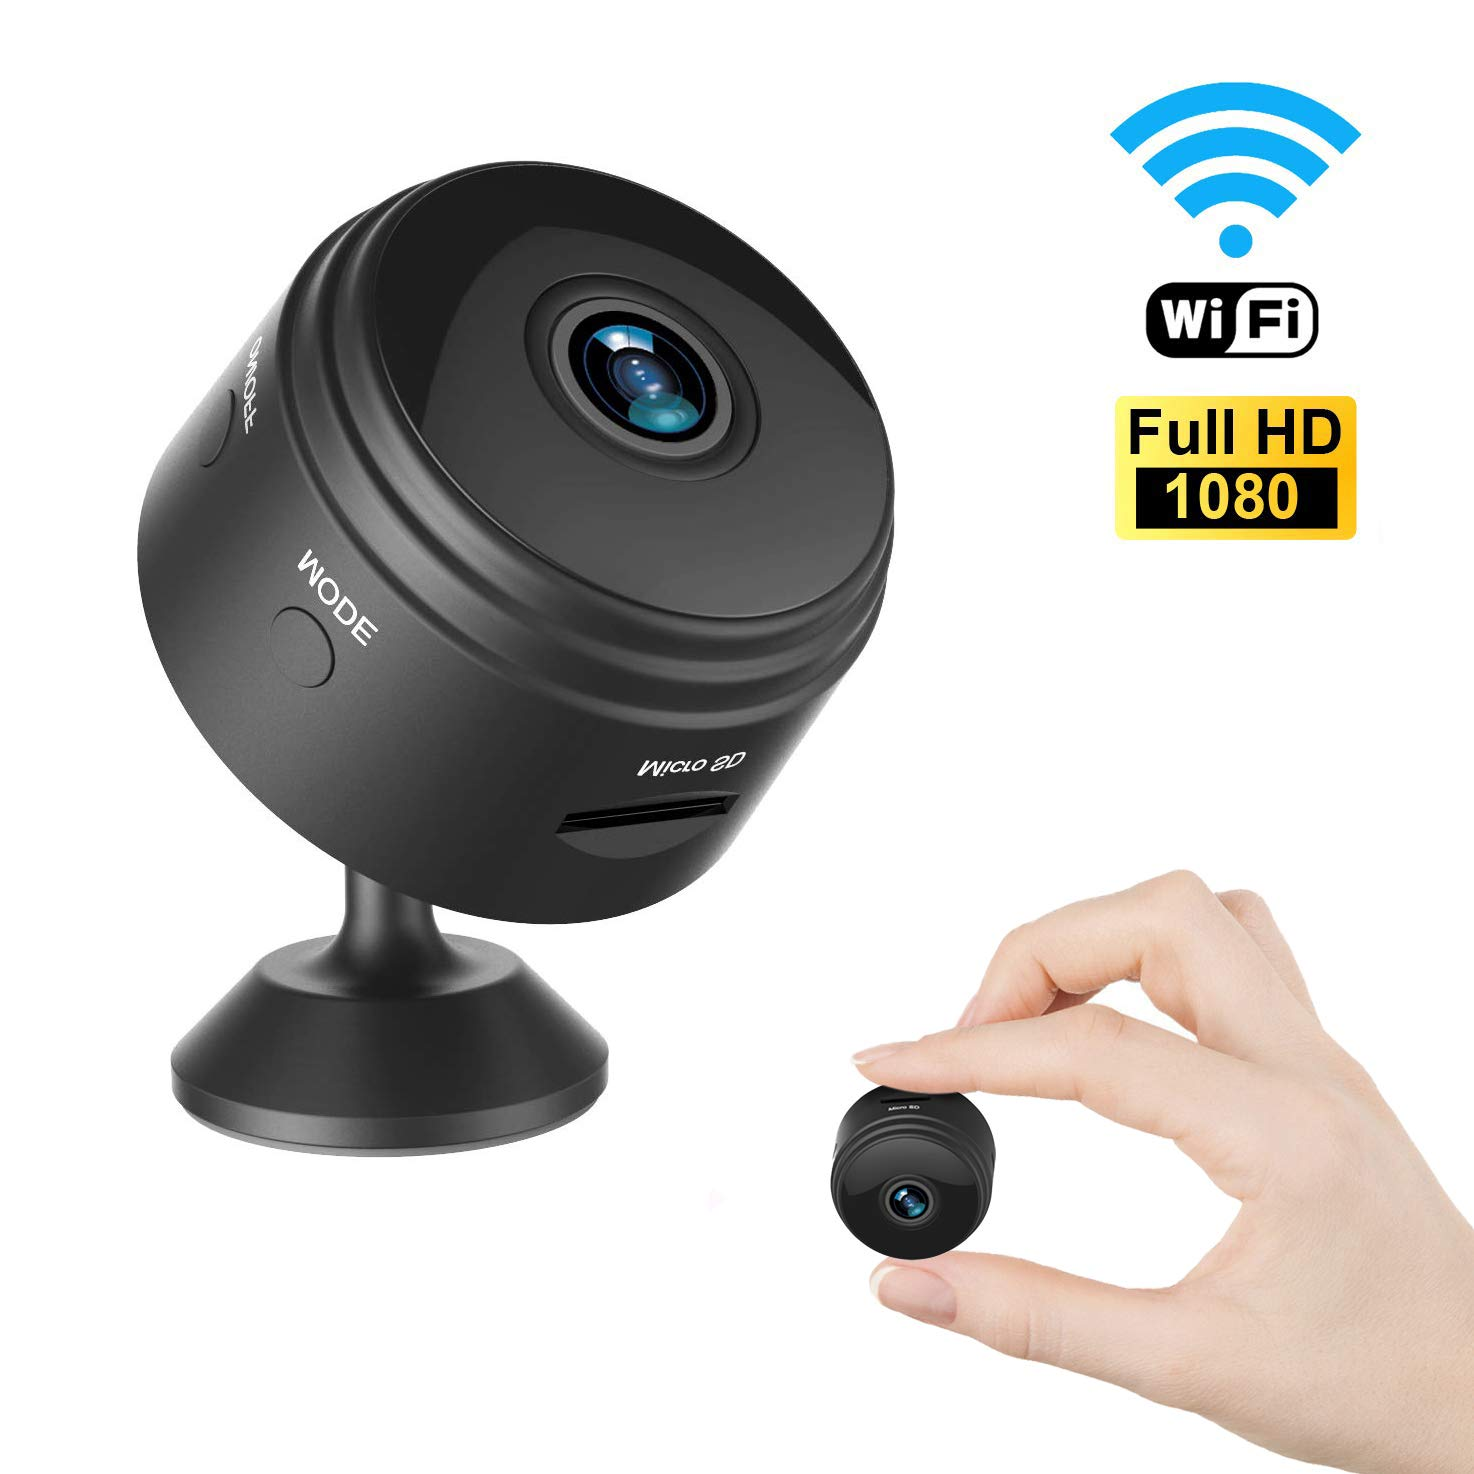 Mini Spy Camera Wireless Hidden Camera WiFi HD 1080P Small Nanny Cam Home Security Motion Detection Night Vision Remote View with Cell Phone App Android iPhone